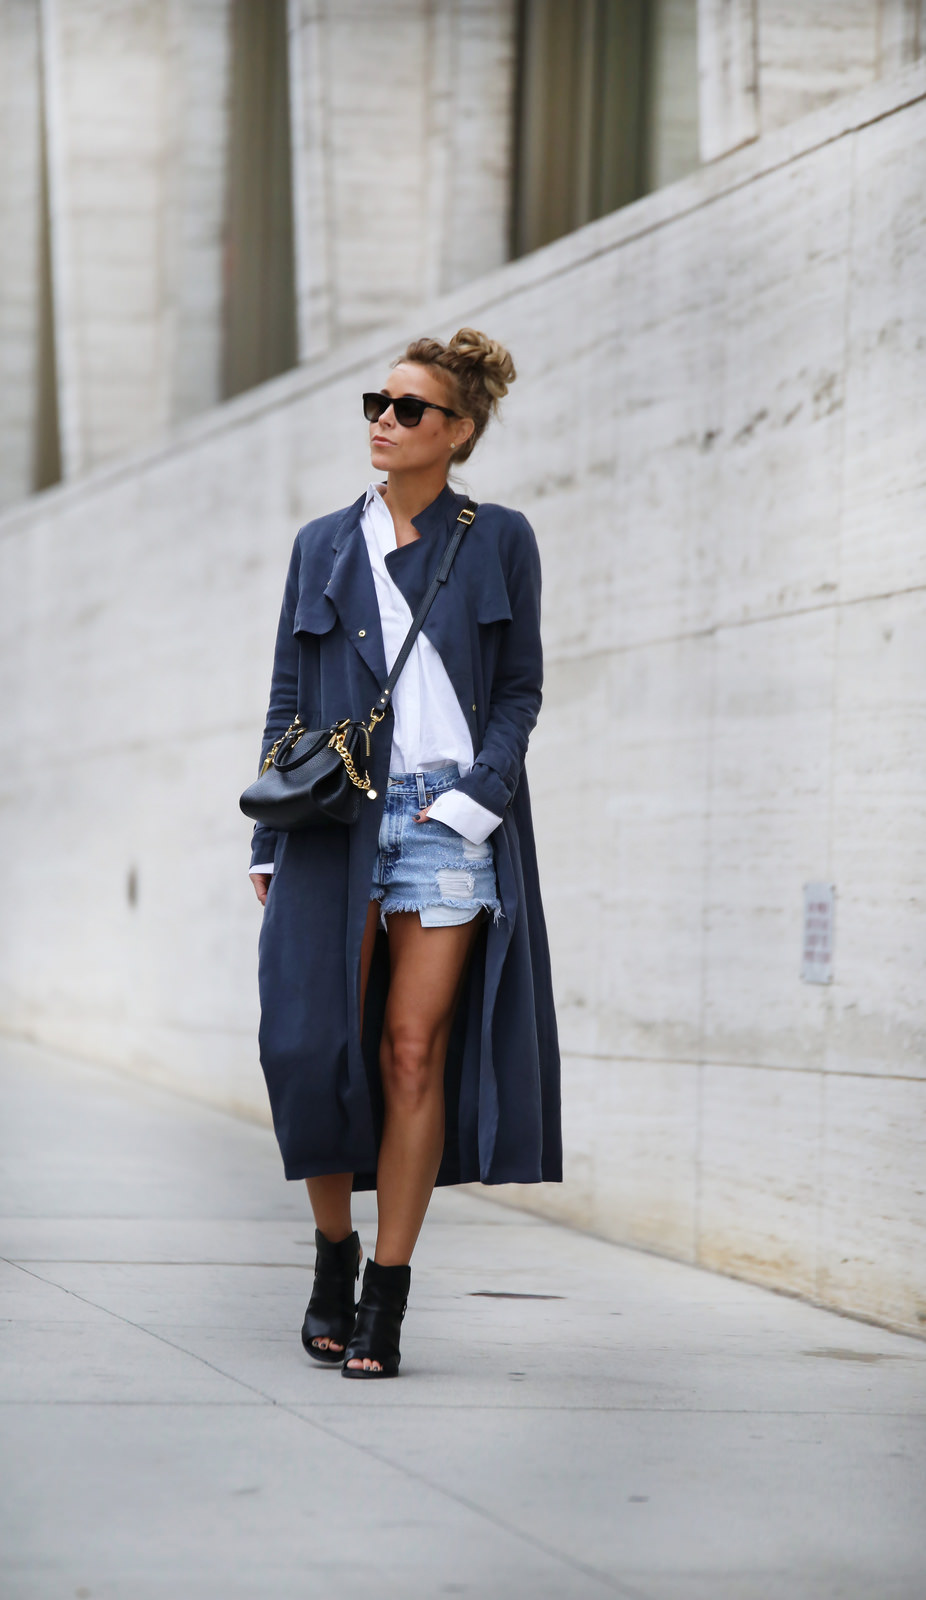 Mary Seng is wearing a blue duster from French Connection, white shirt from Alexander Wang, denim shorts from Levi's, sandals from Rag & Bone and the bag is from Sophie Hulme